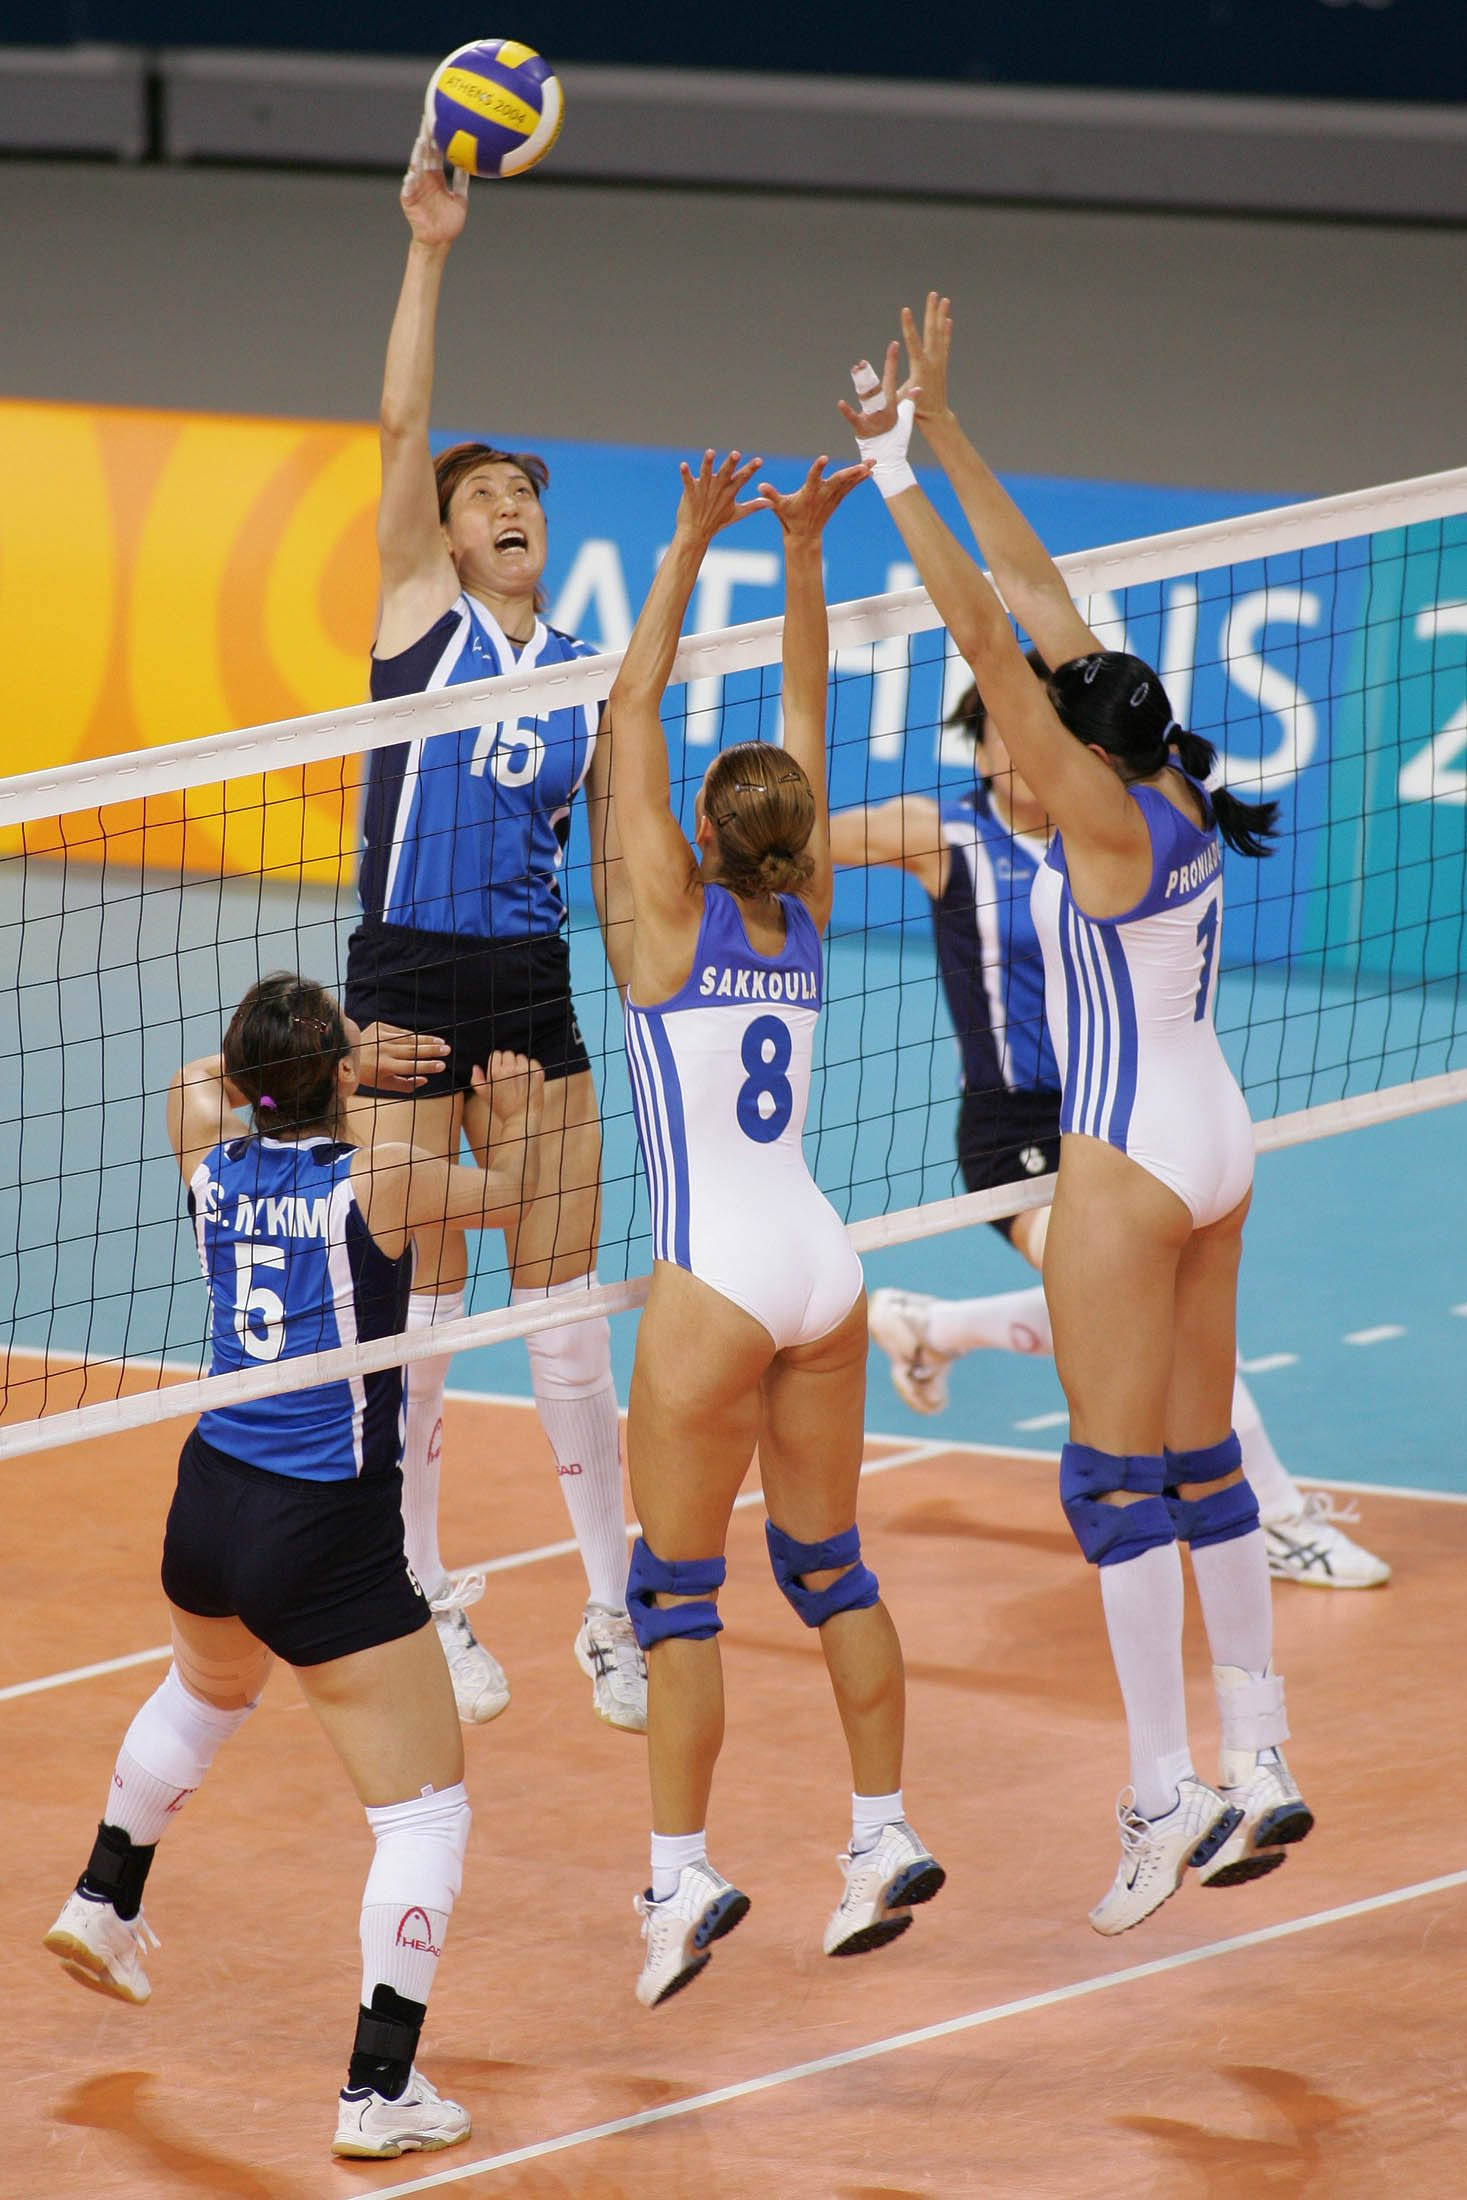 Nude volleyball foto 49